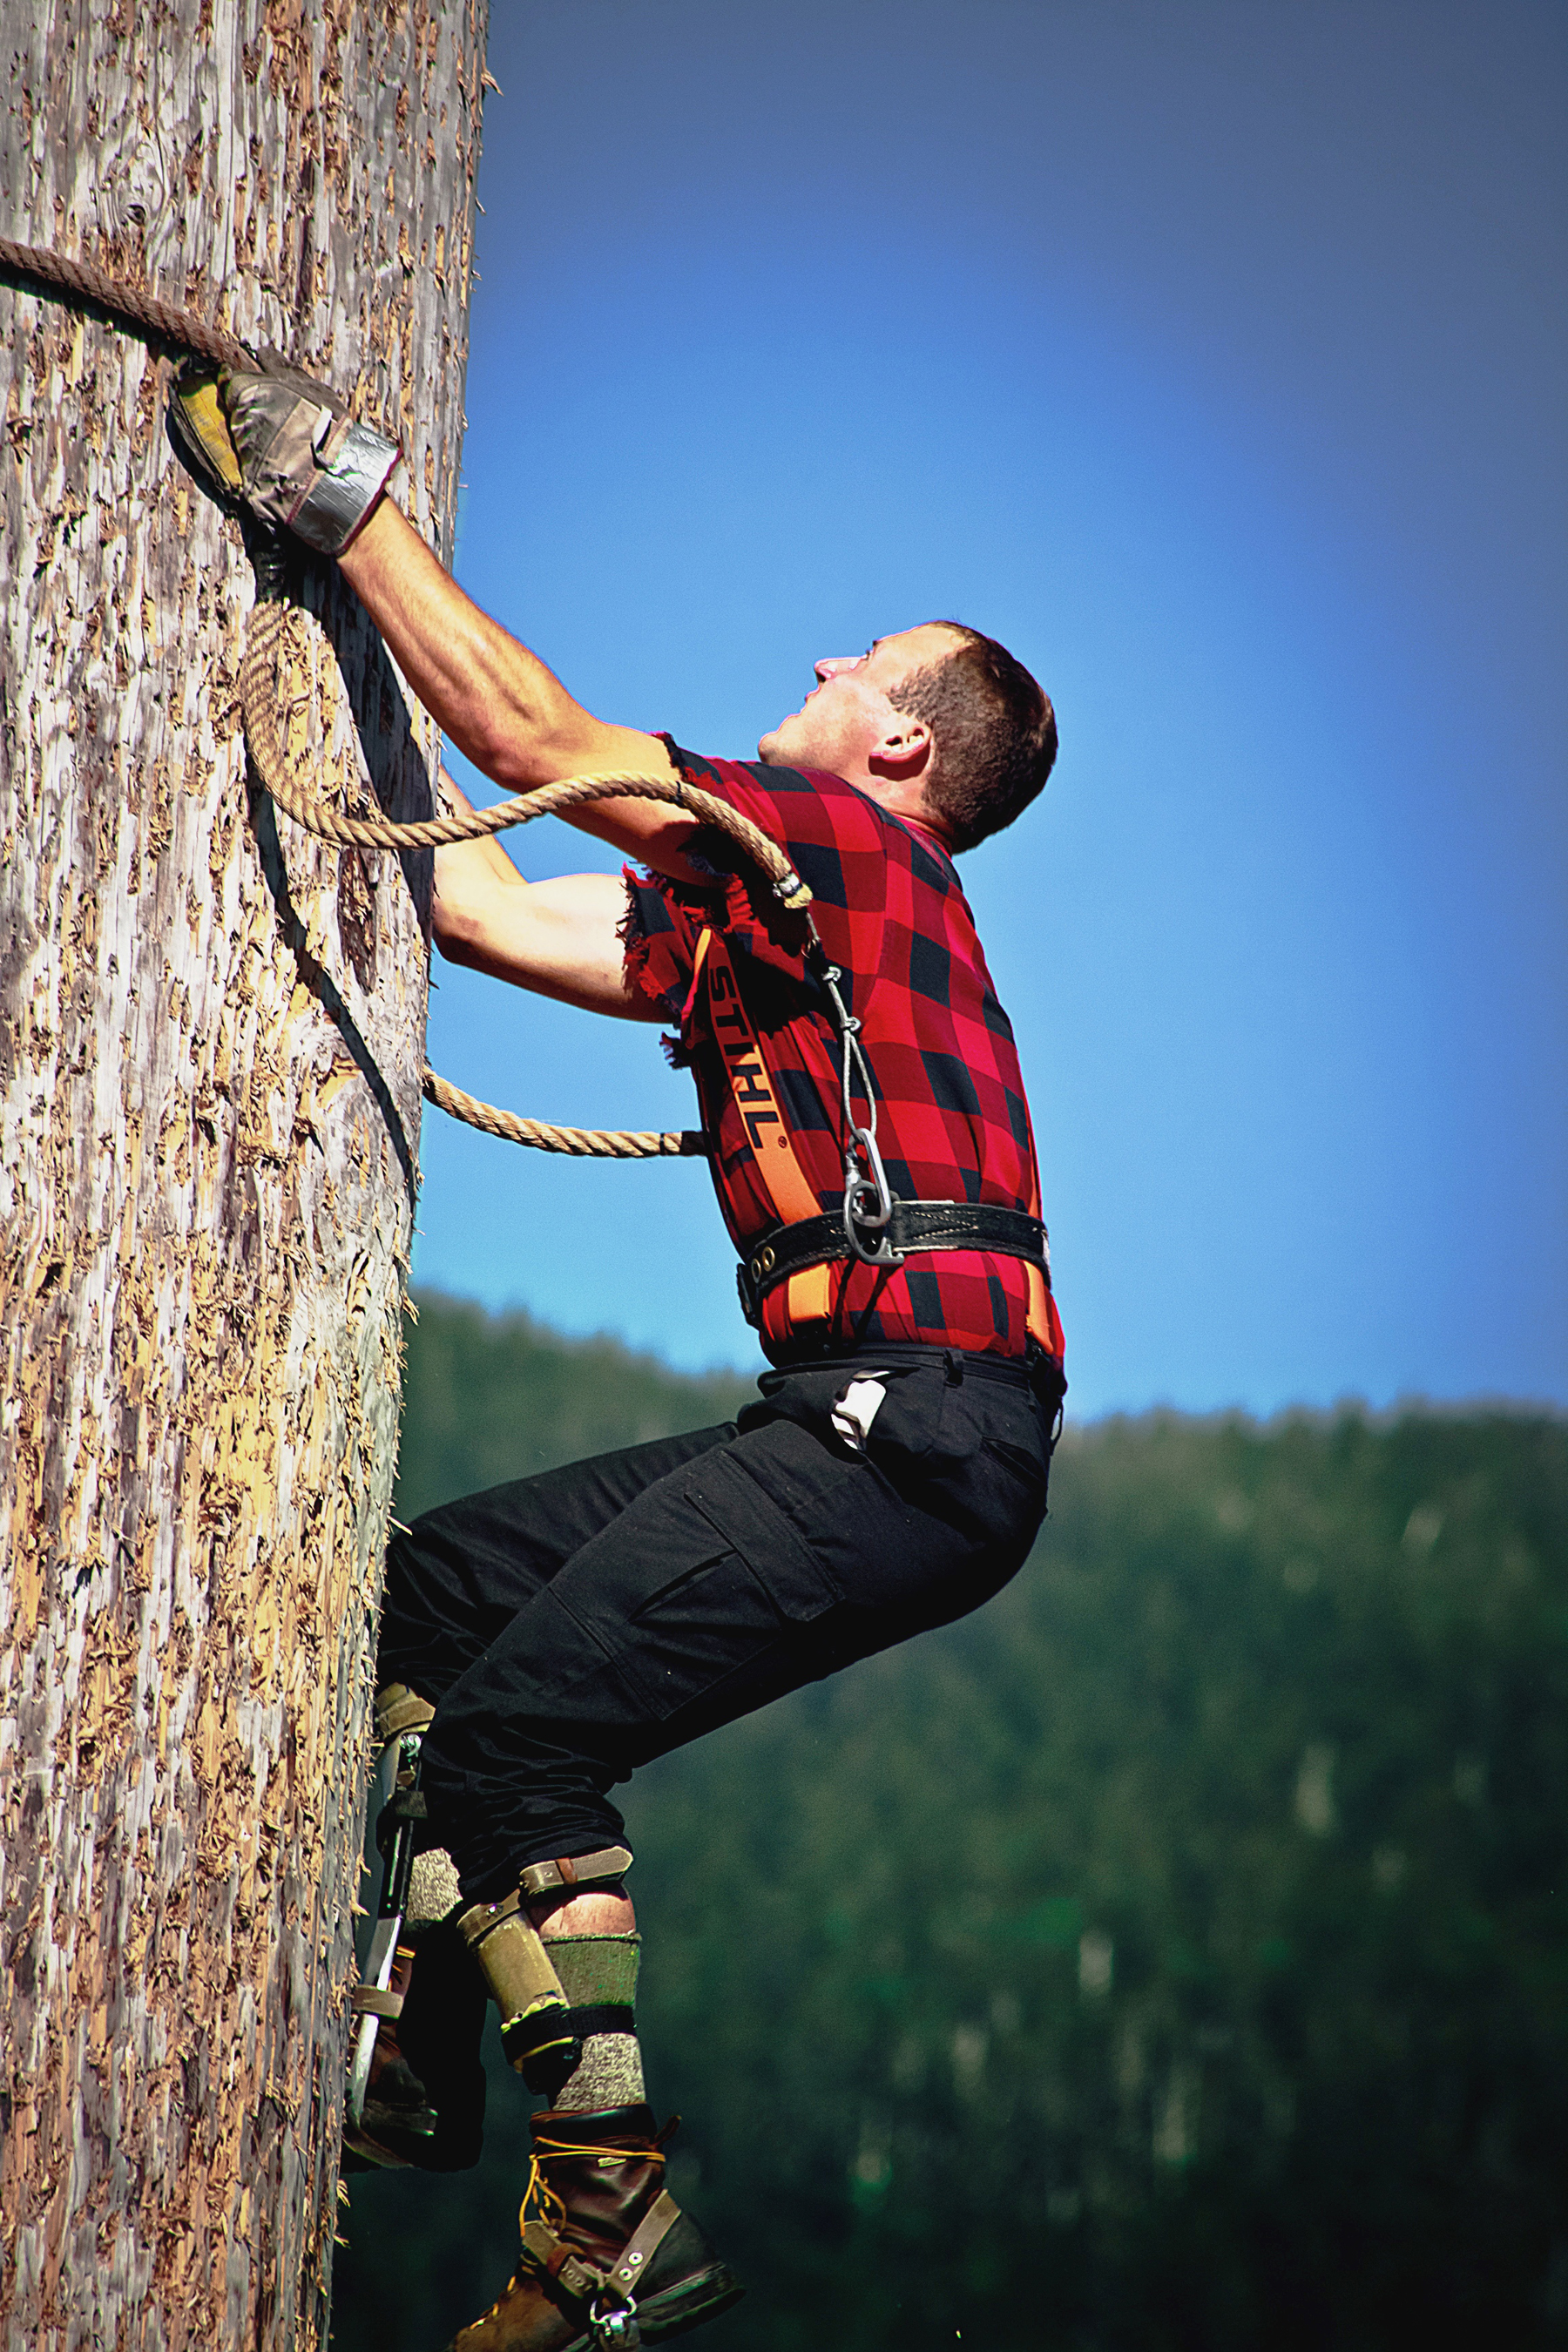 51180-Lumberjack-Feud-athlete-demonstrates-his-climbing-skills-original